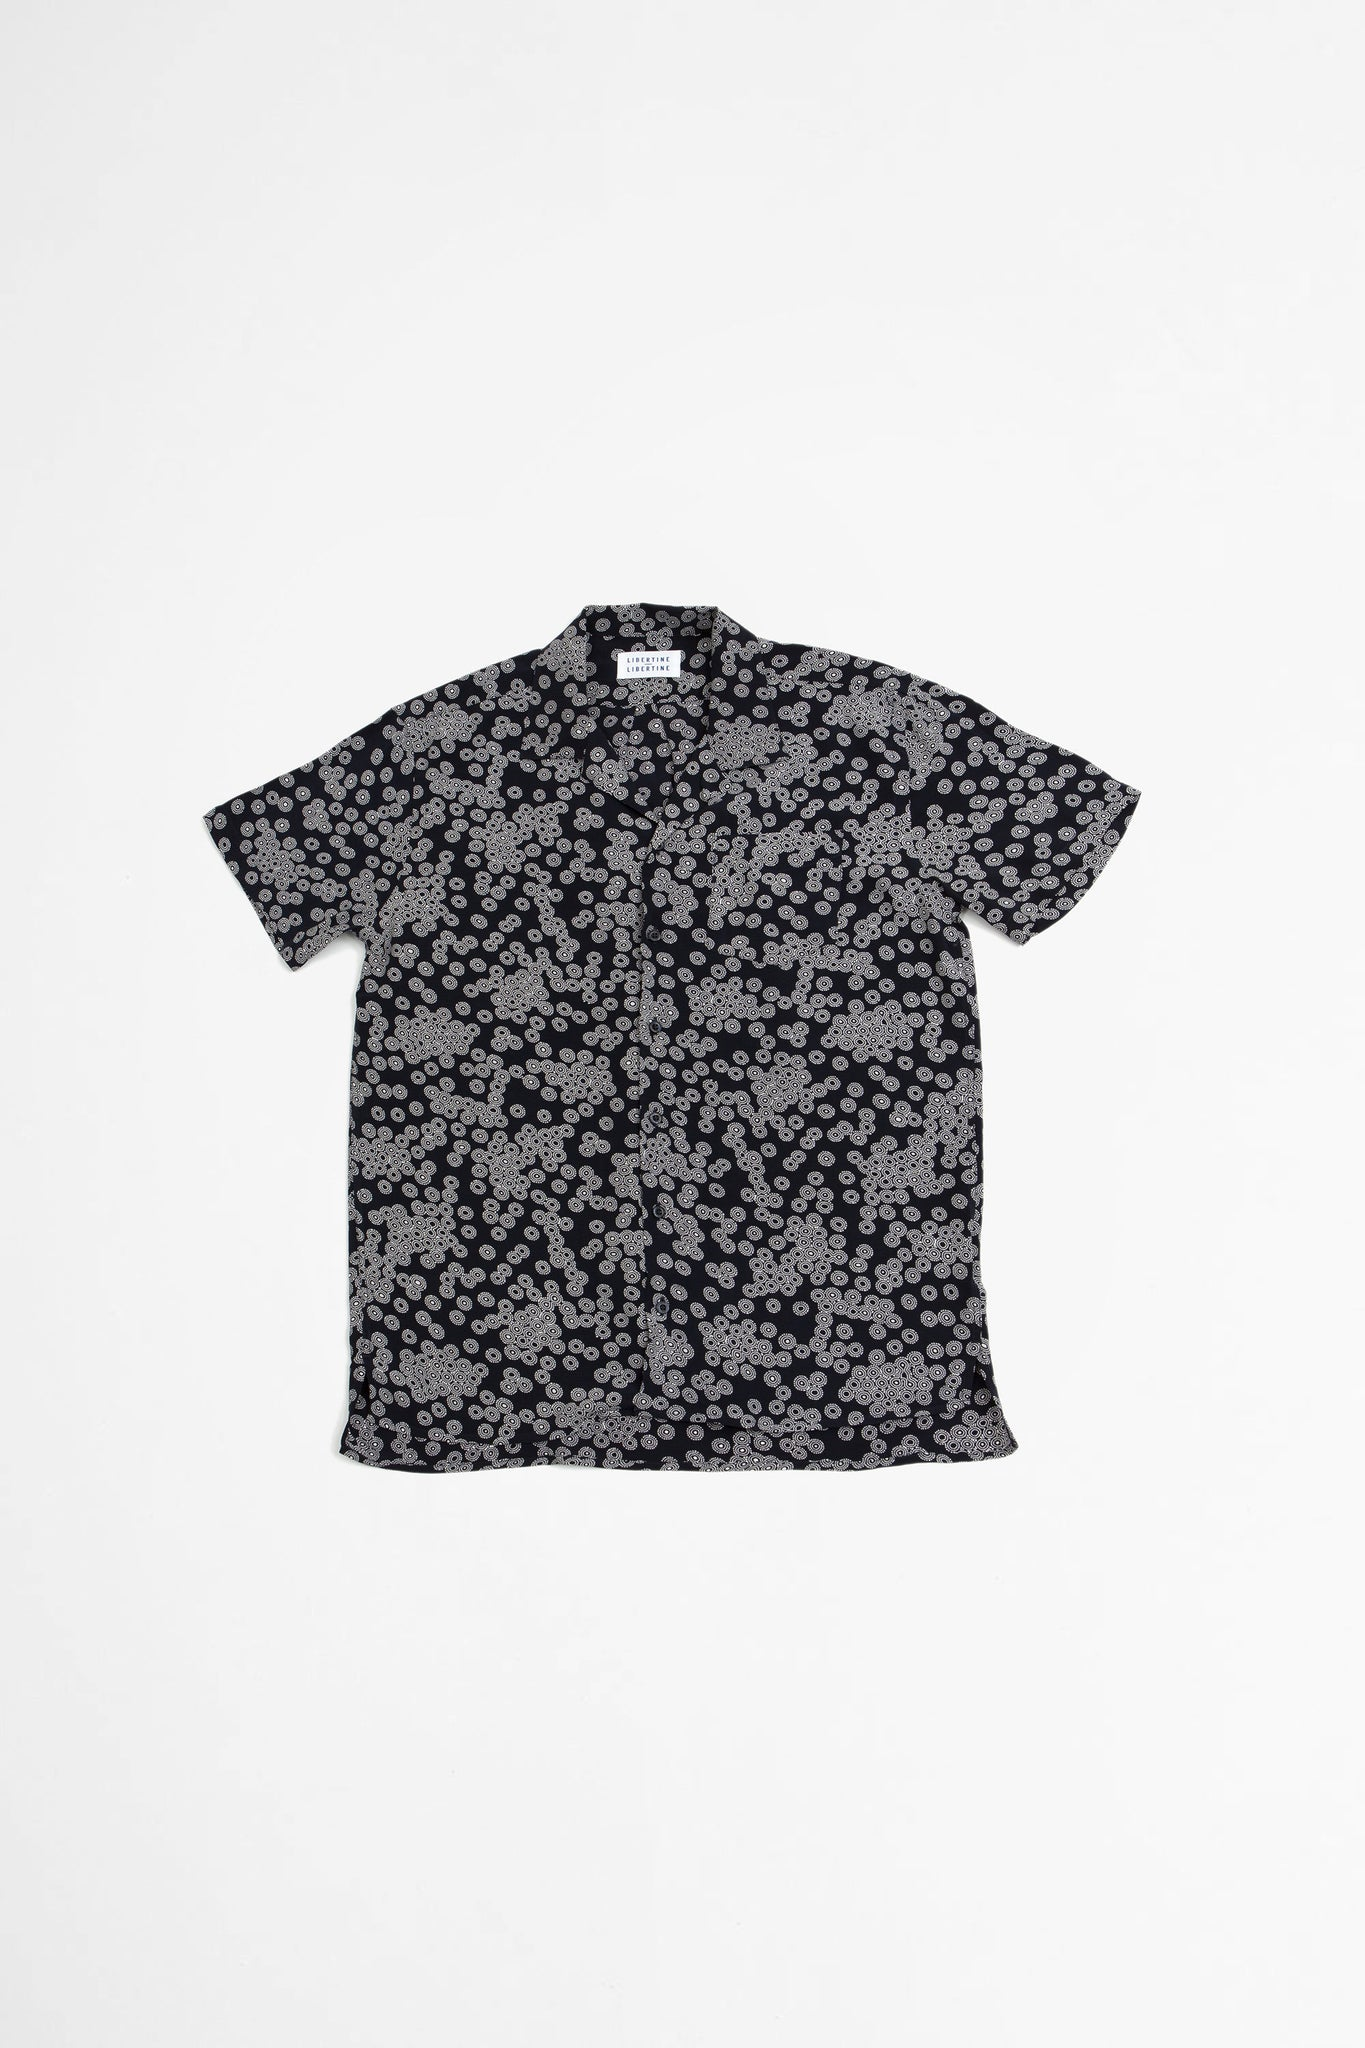 Cave S/S shirt dark navy print